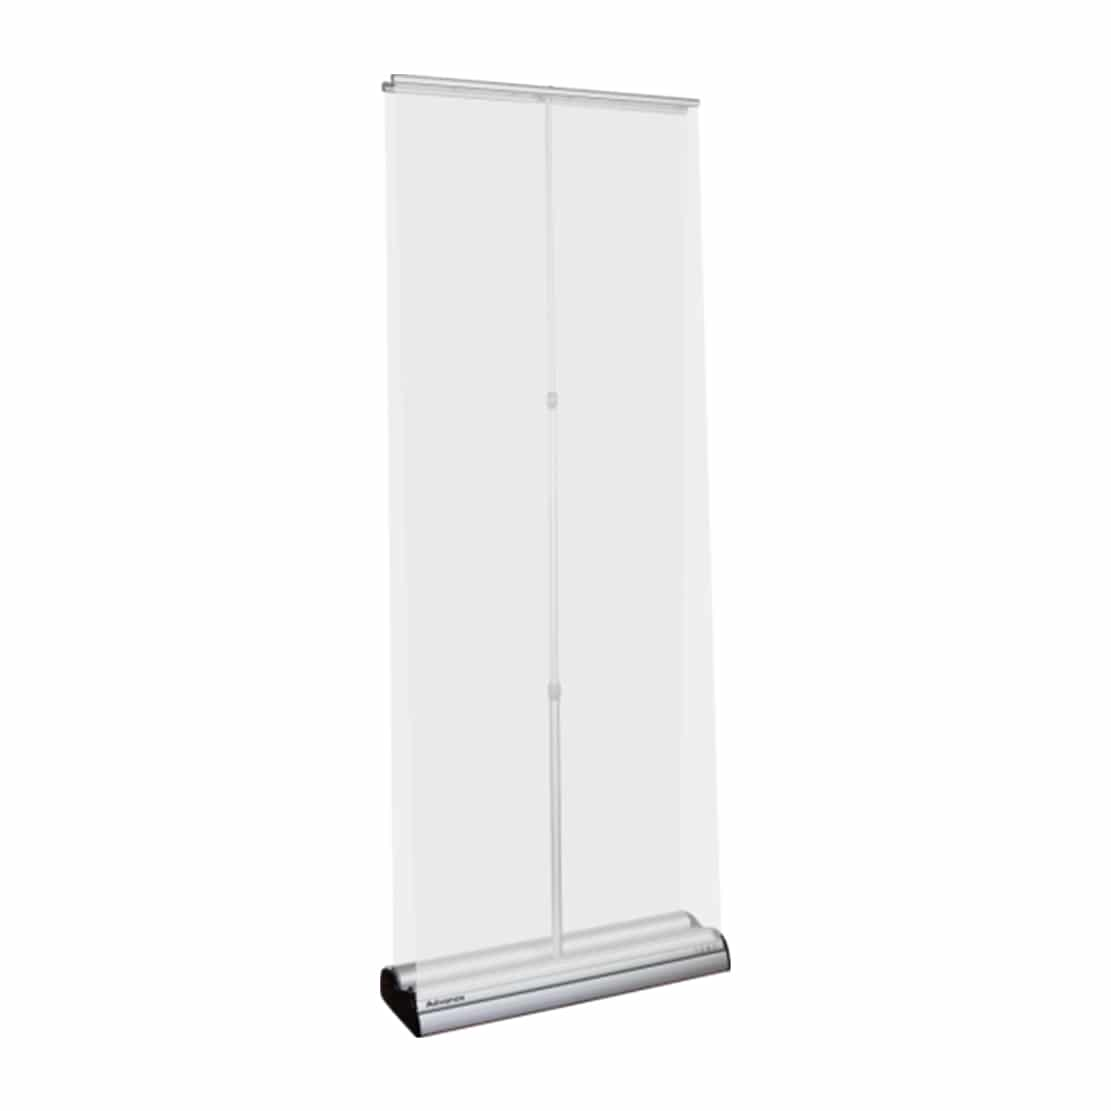 advance double-sided banner stand silver showing pole and both top bars